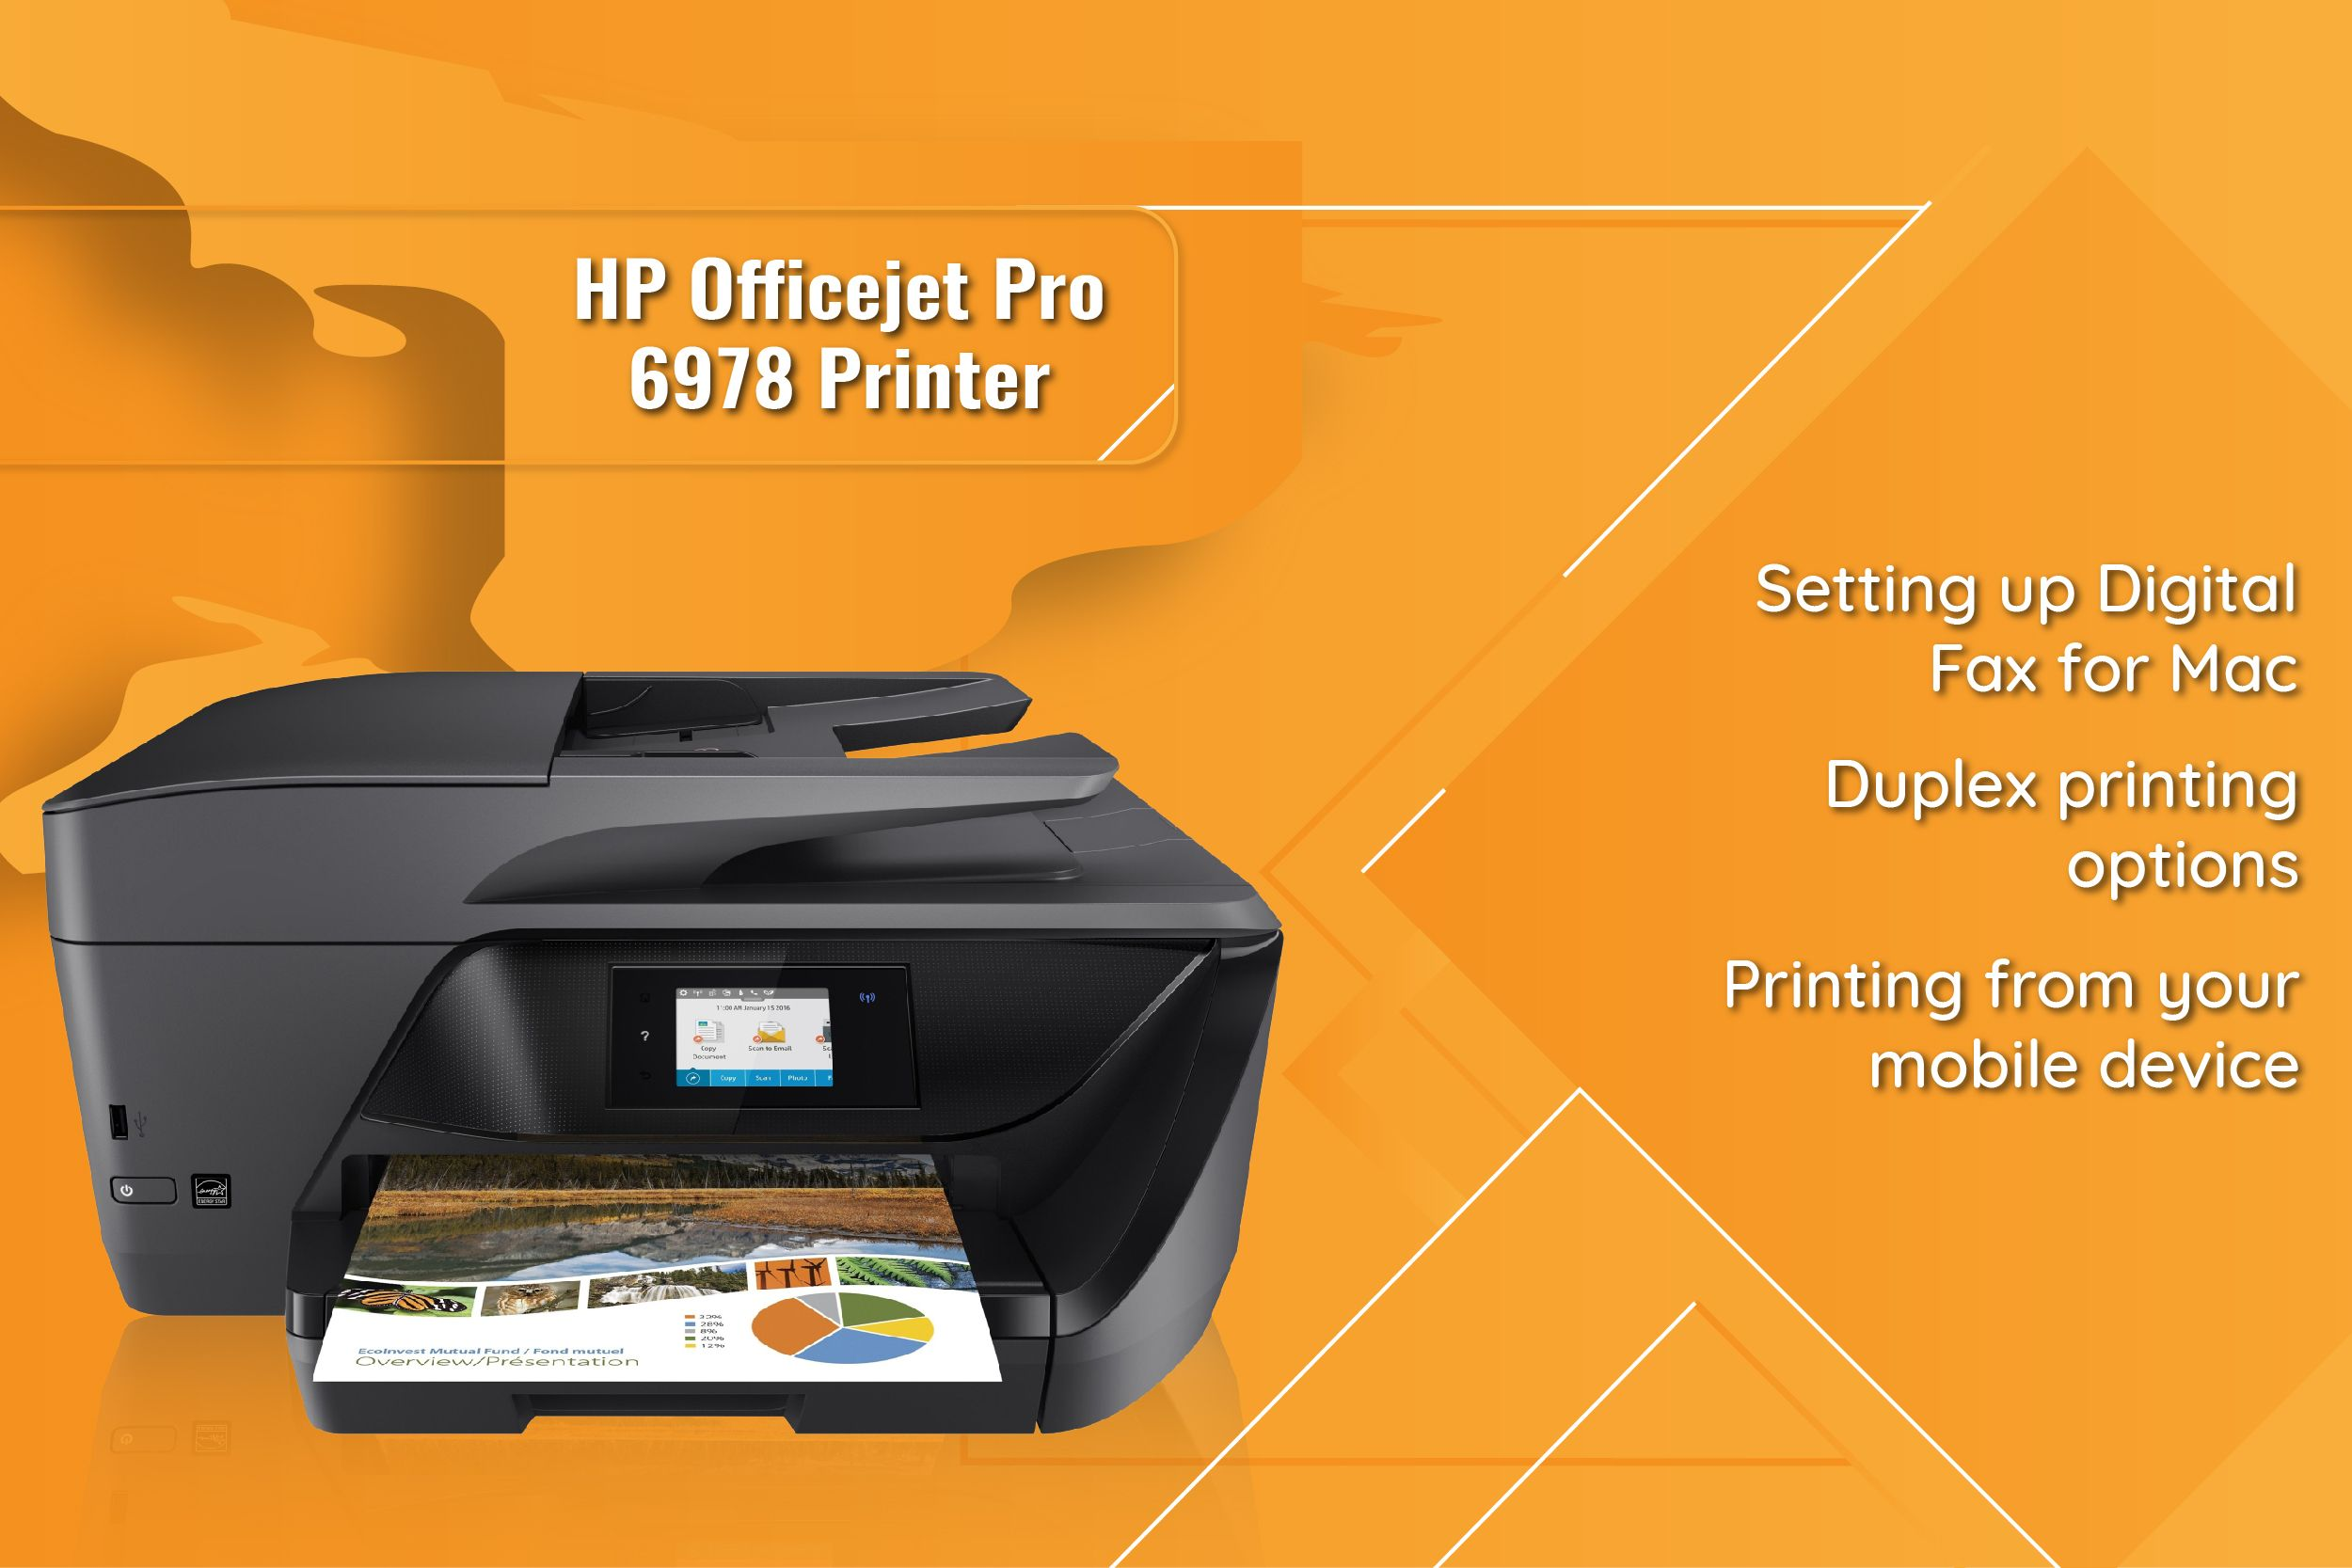 To know how to do duplex printing from HP Officejet Pro 6978